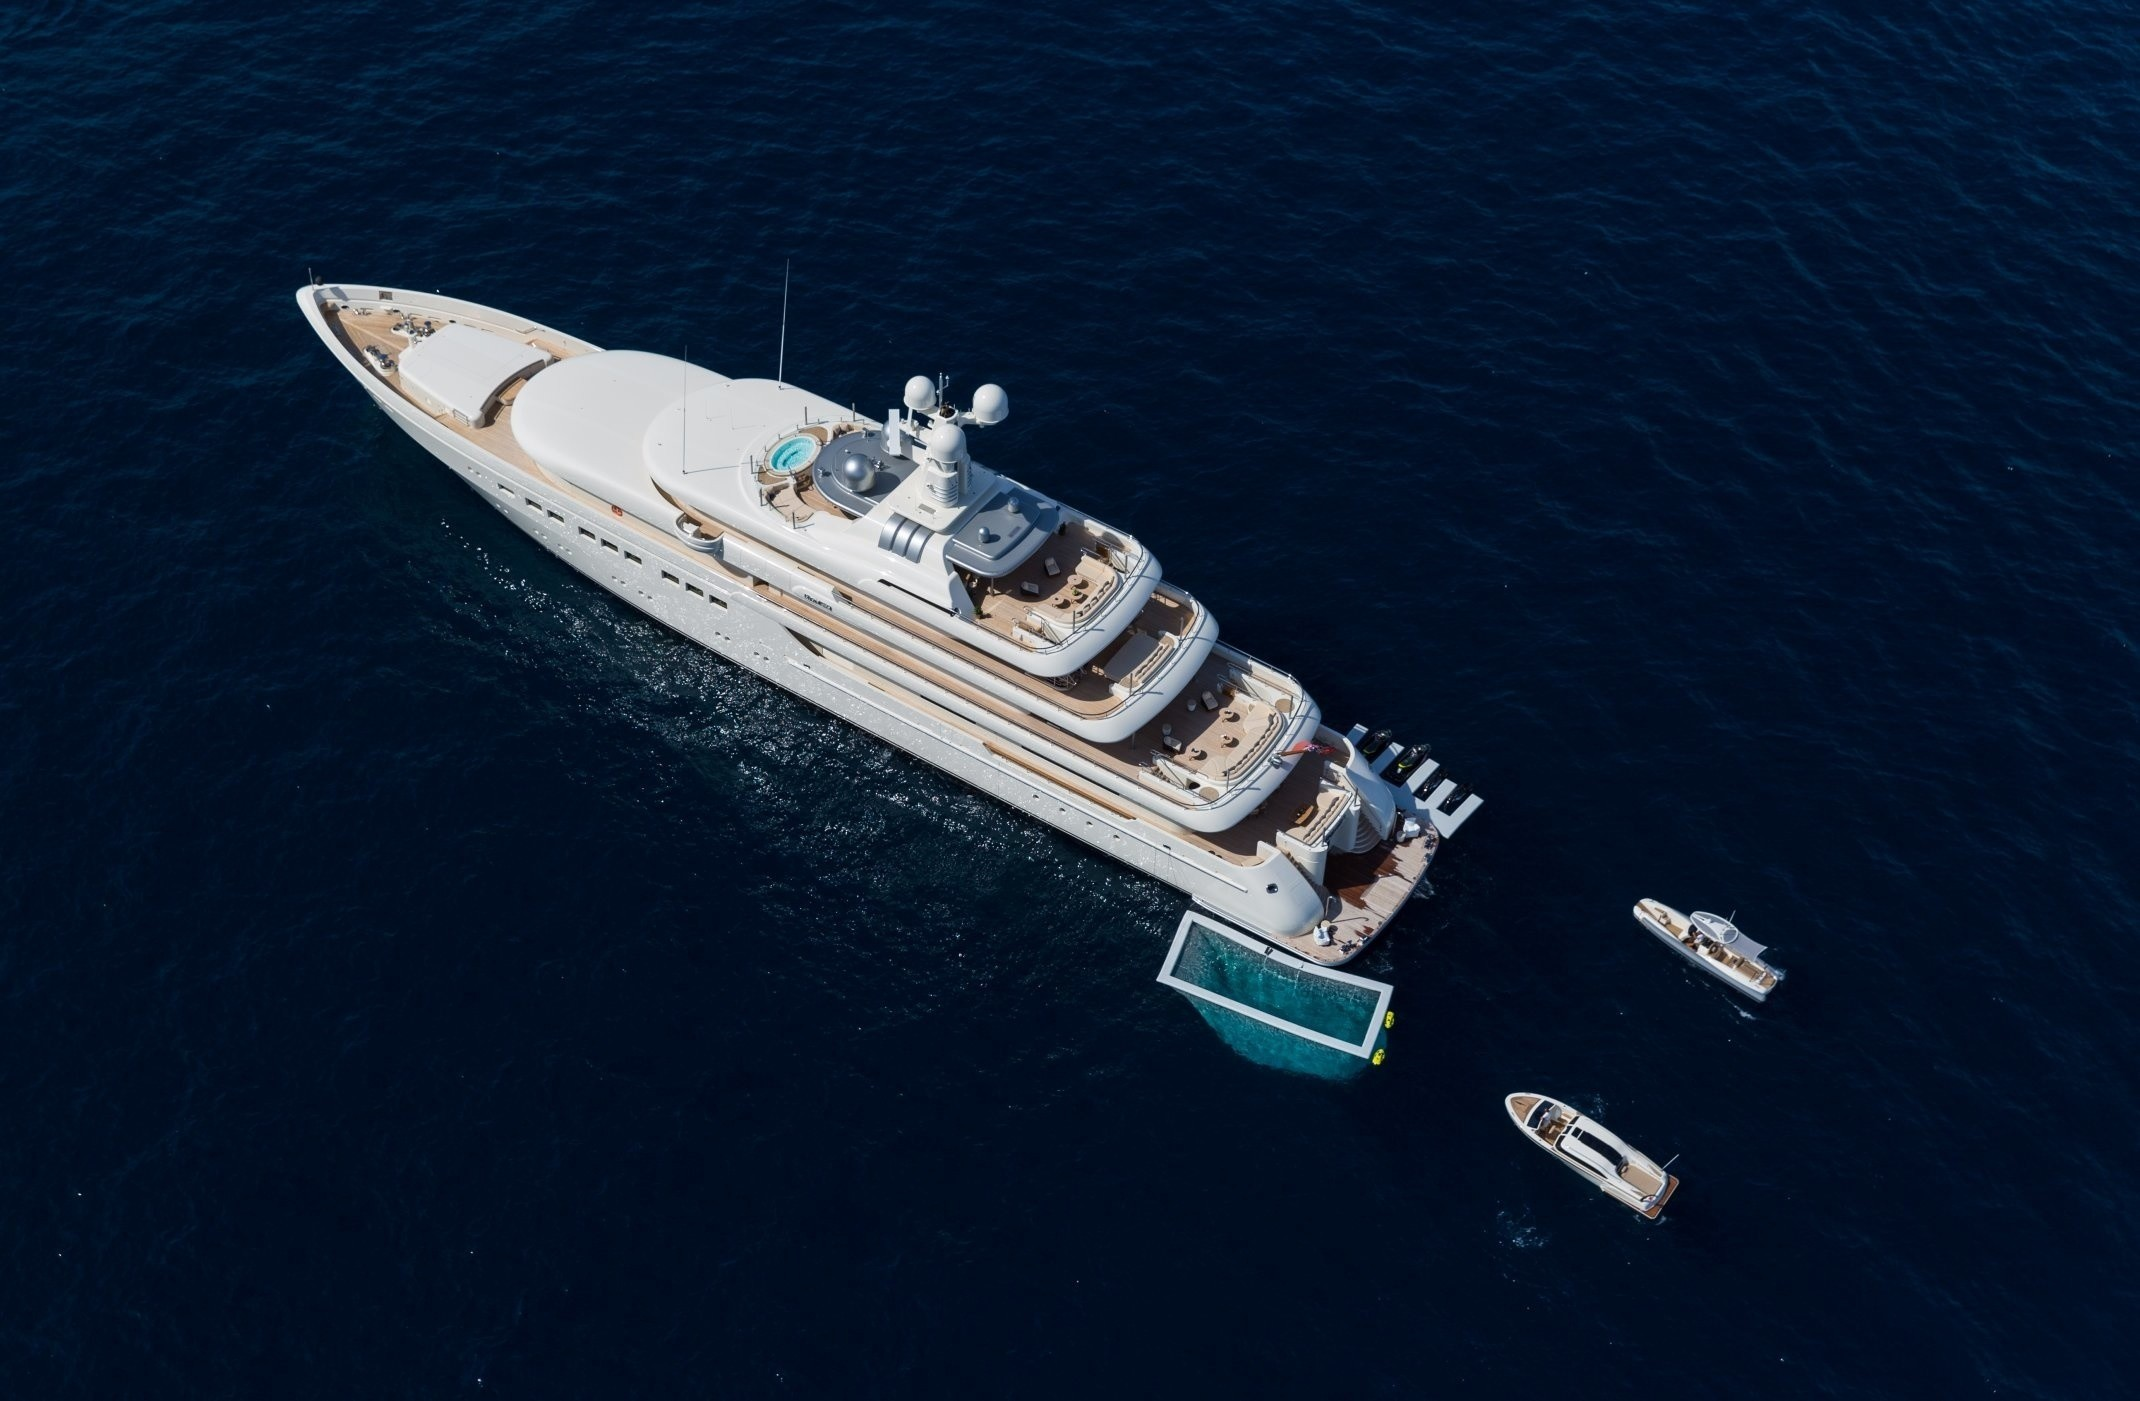 aerial view of the yacht at anchor with water toys